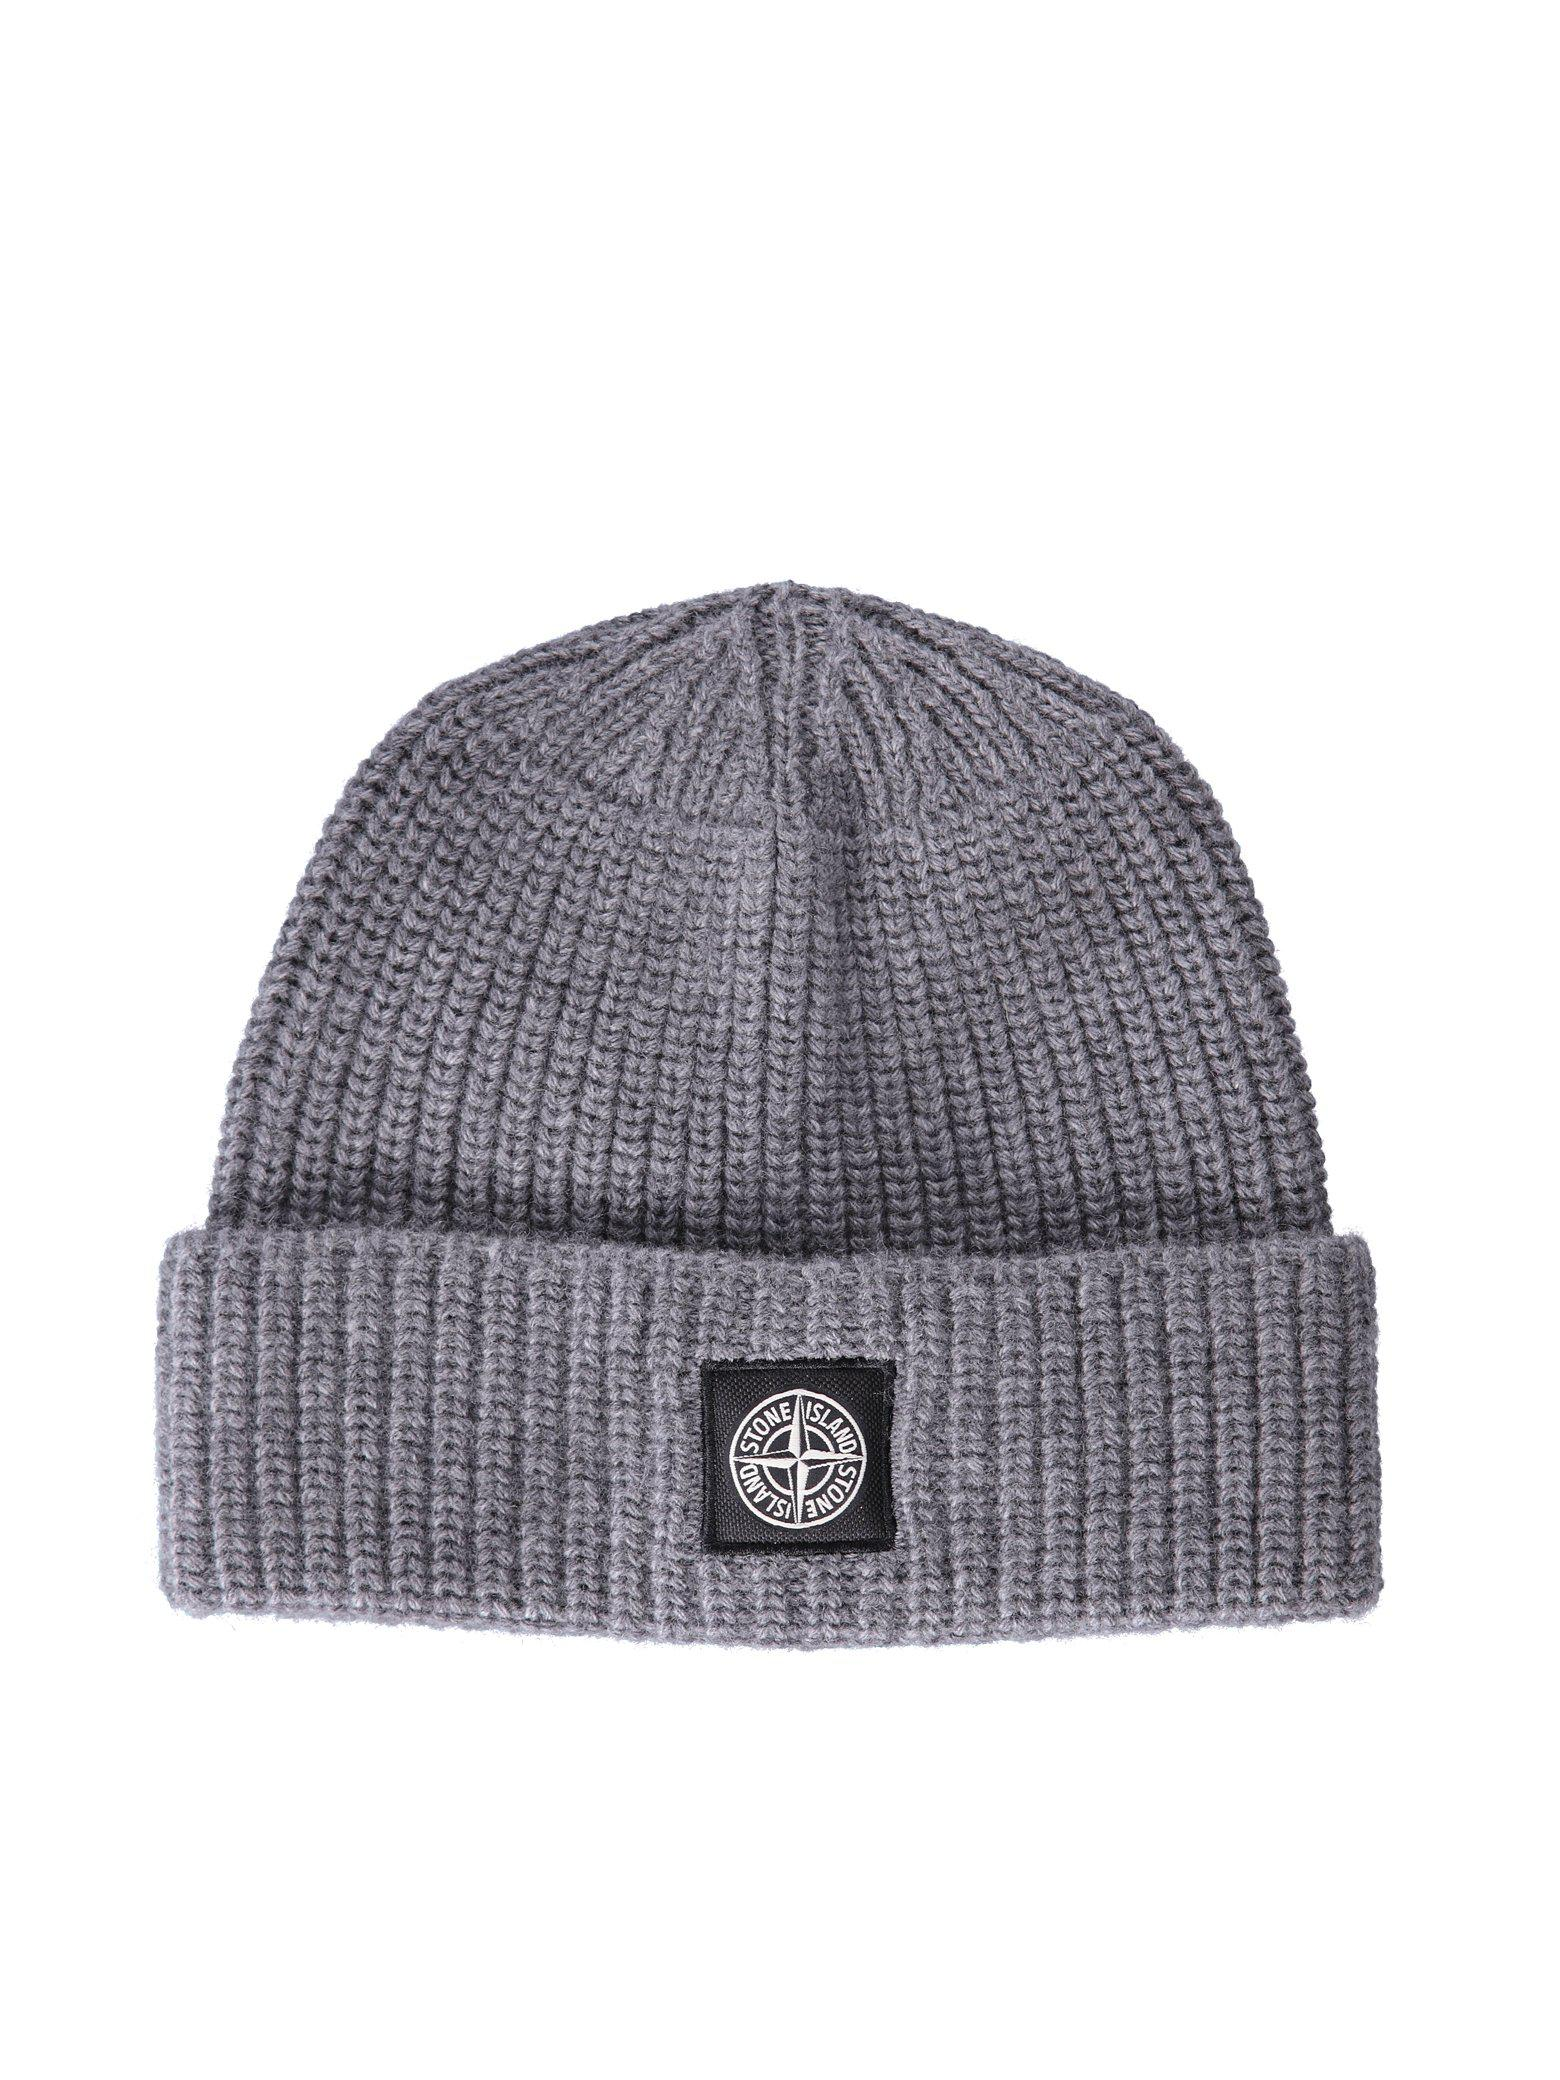 8a08d892817 ... Ribbed Beanie in Gray for Men  website for discount e4849 8c895 Stone  Island. Gray Hat Men ...